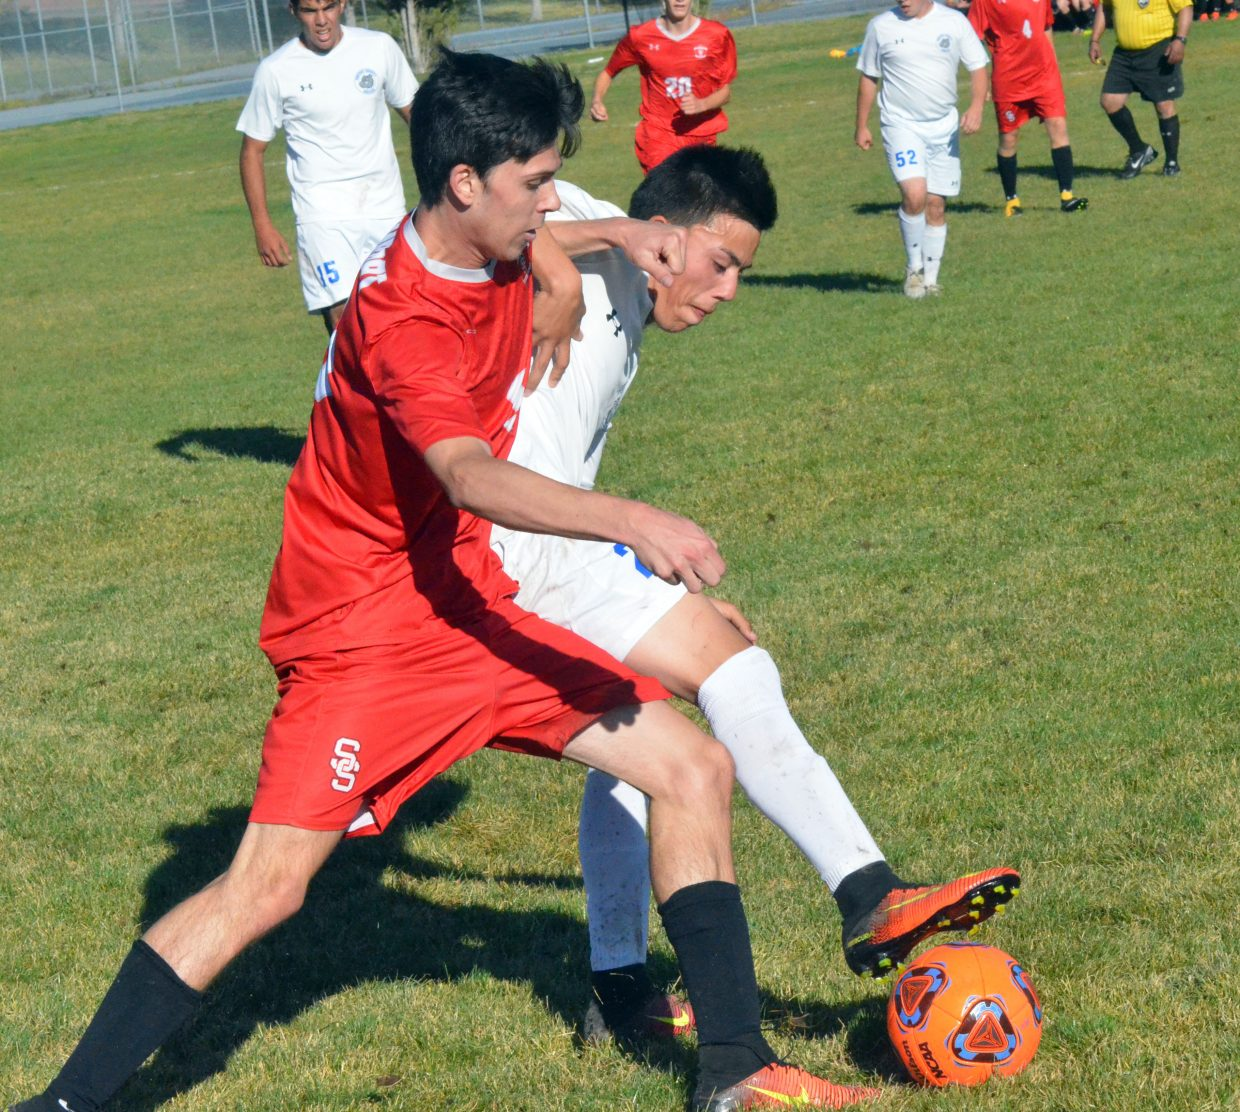 Moffat County High School's Josh Pando and Steamboat Springs' Jake Berry fight it out for the ball near the sideline during Thursday's soccer game in Craig. Steamboat won 3-2 in overtime.